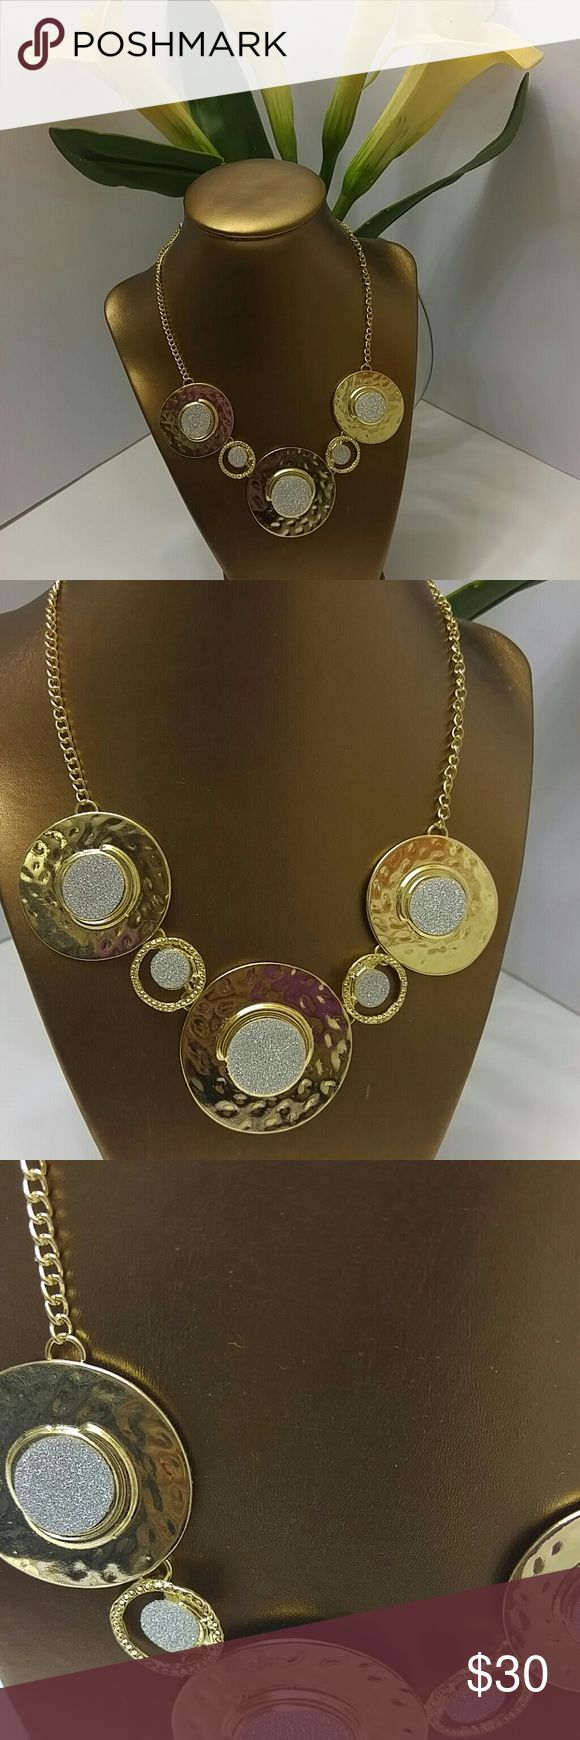 Classy Statement Necklace Add some life to that neckline...🙆..This adorable piece is full of life and class..gold plated an excellent quality piece.accented with gold dust in each piece of nicely  shaped oval which makes this stands out.It comes with a perfectly paired  earring..💃💃💃 Lake shore Drive Jewelry Necklaces